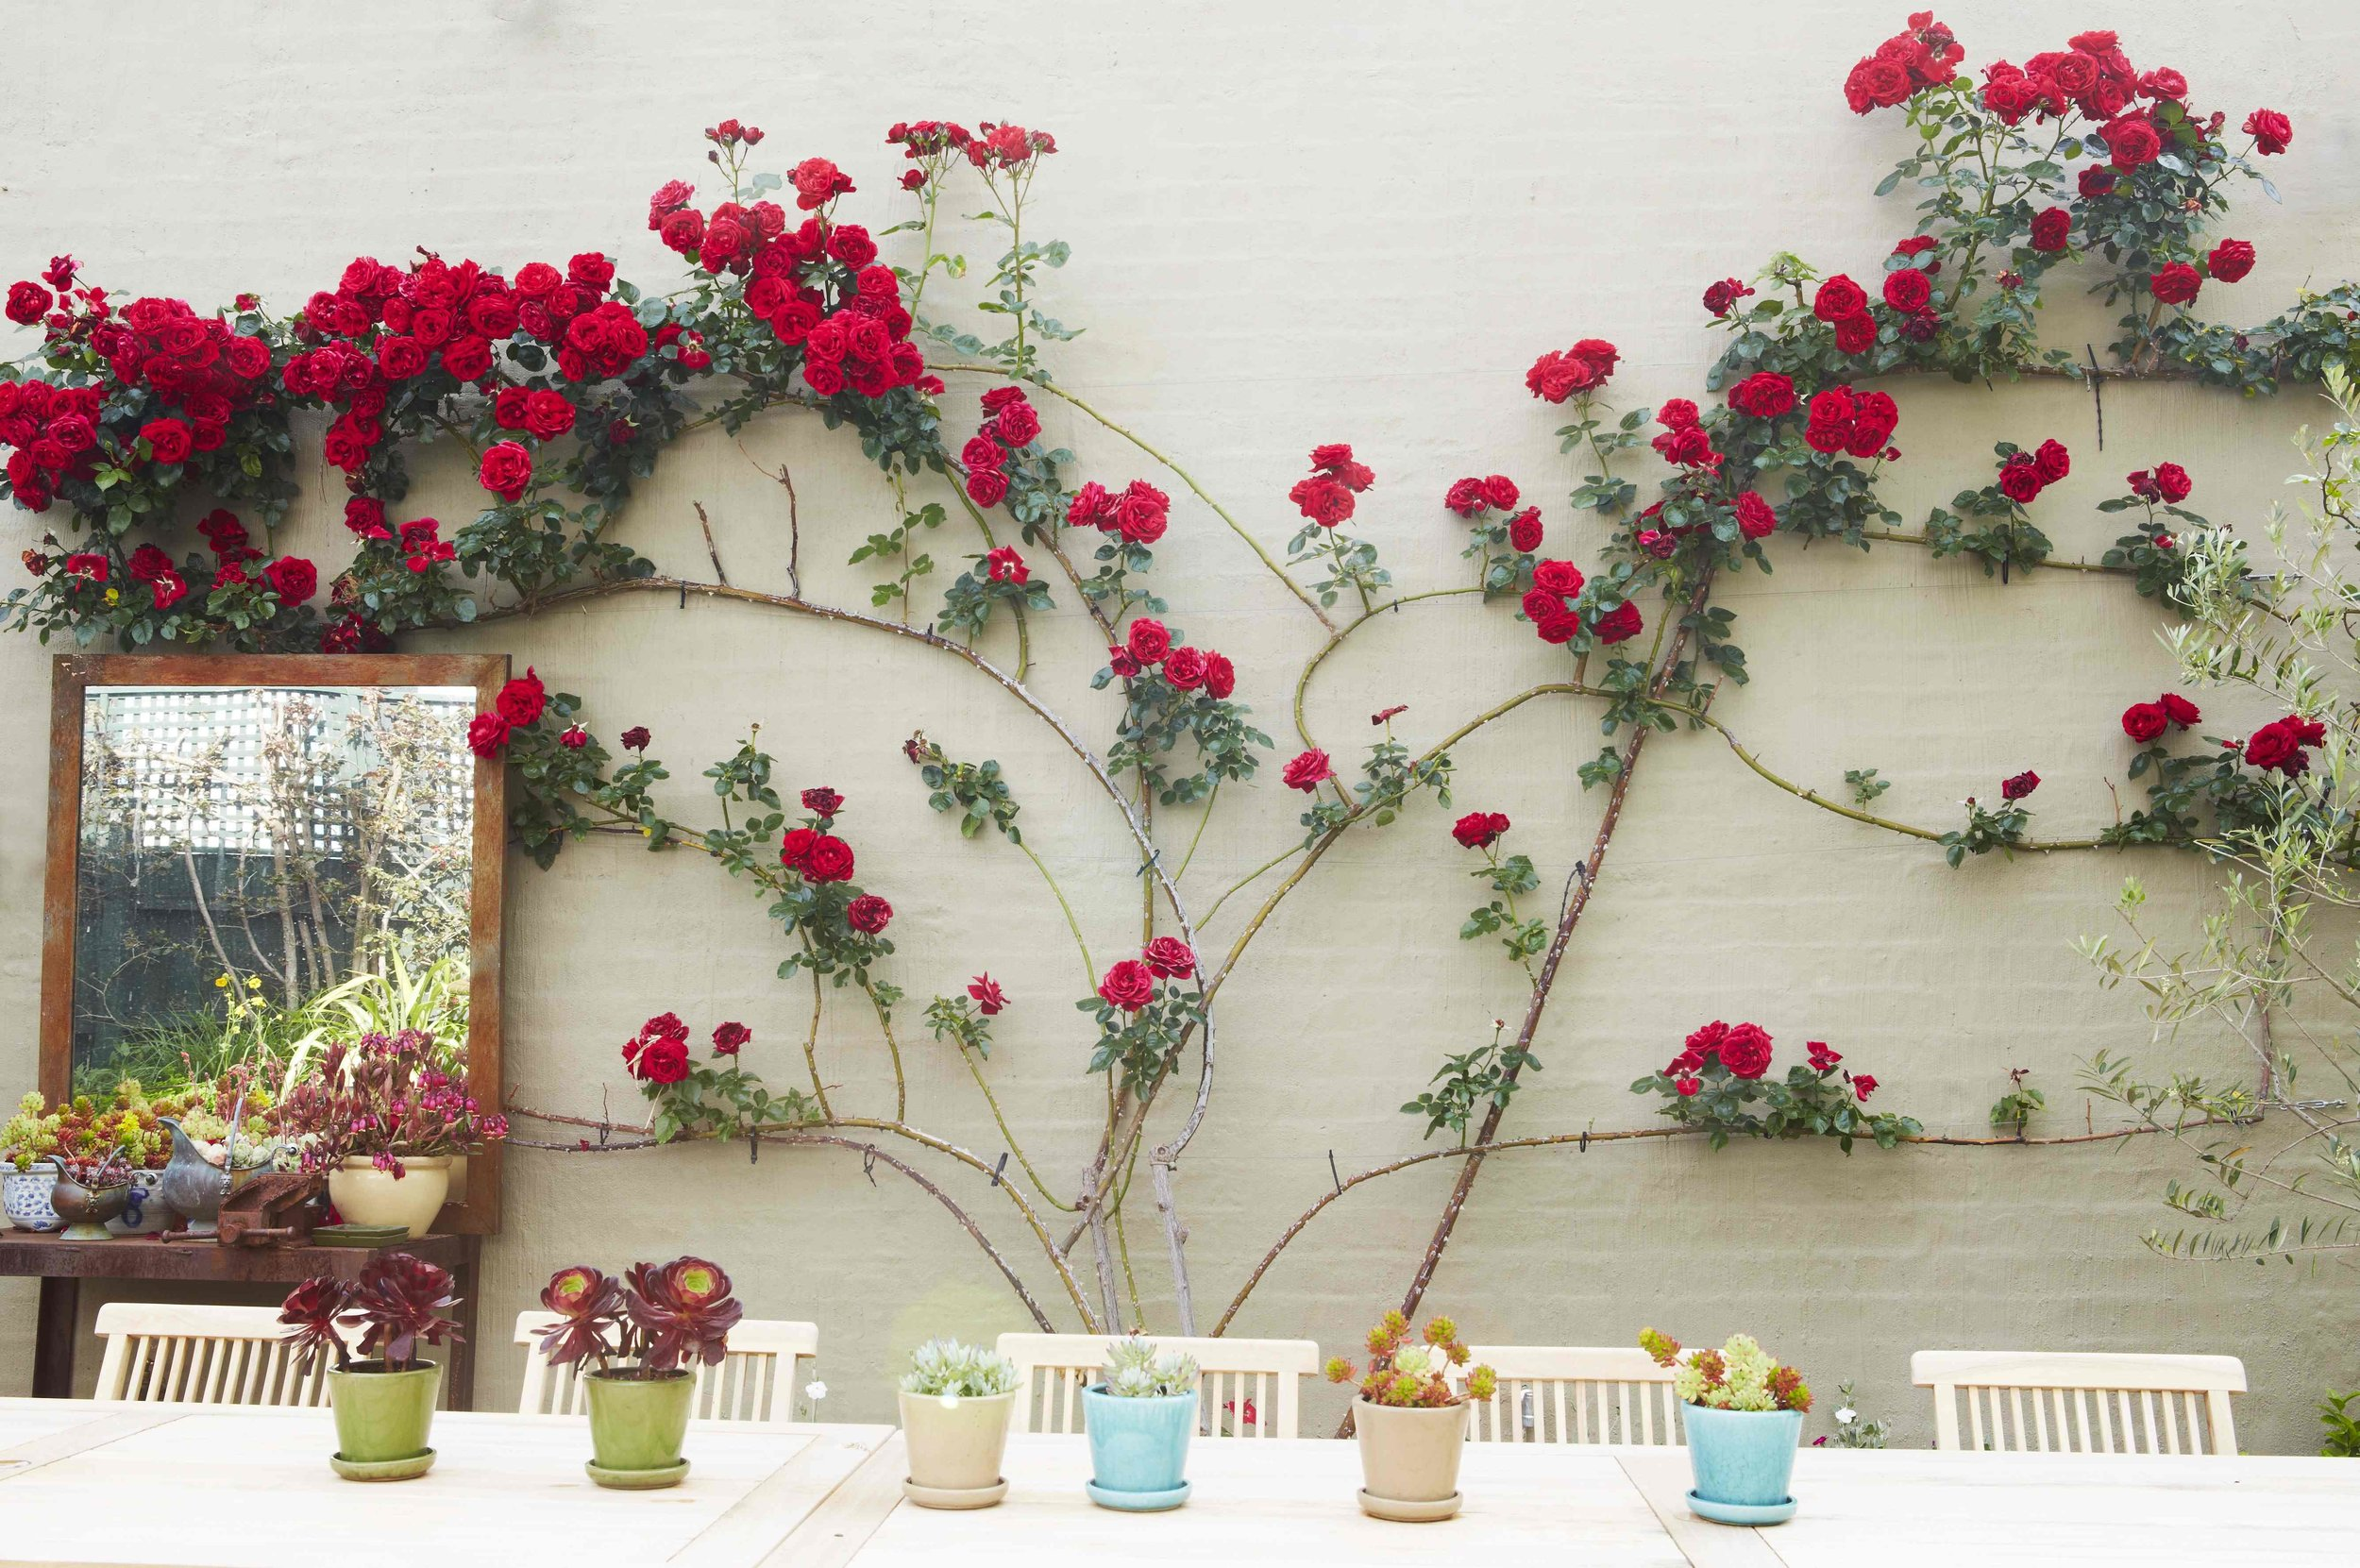 climbing rose trained to wall